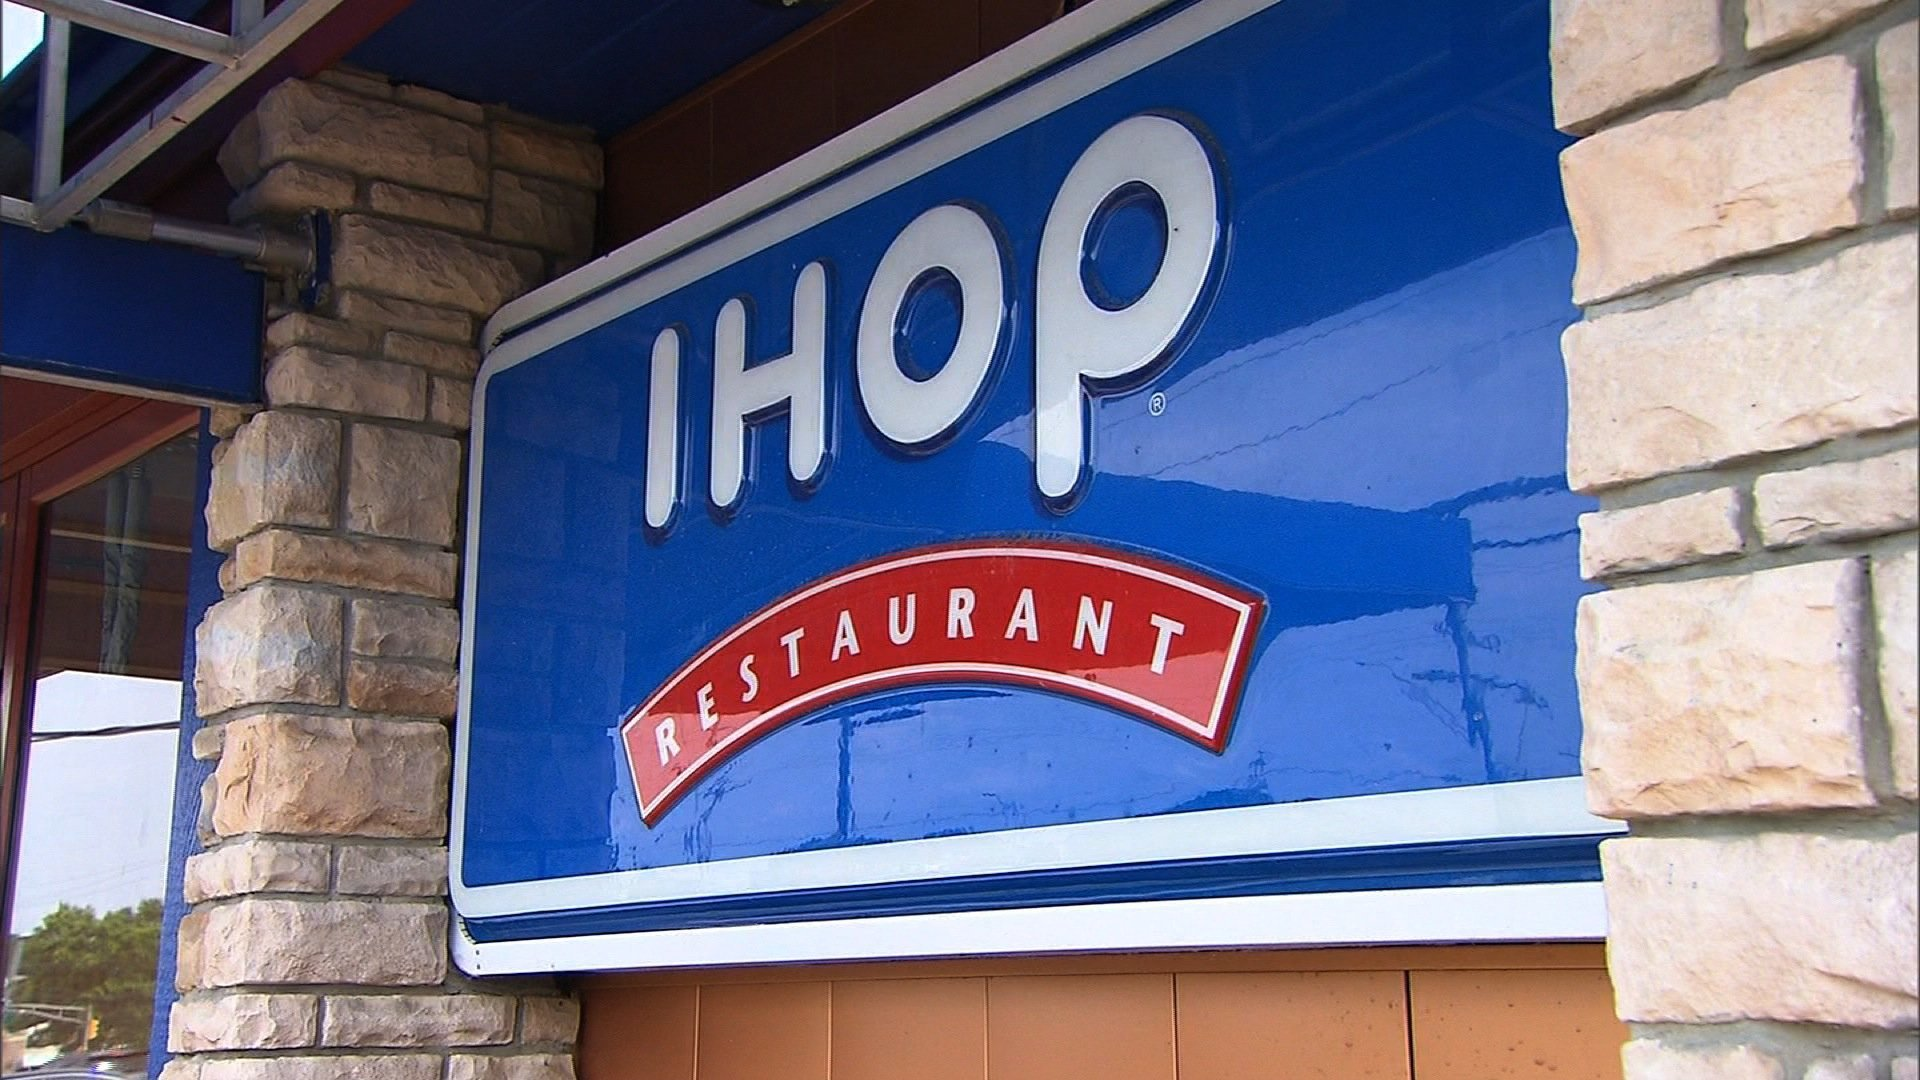 Picture of IHOP sign